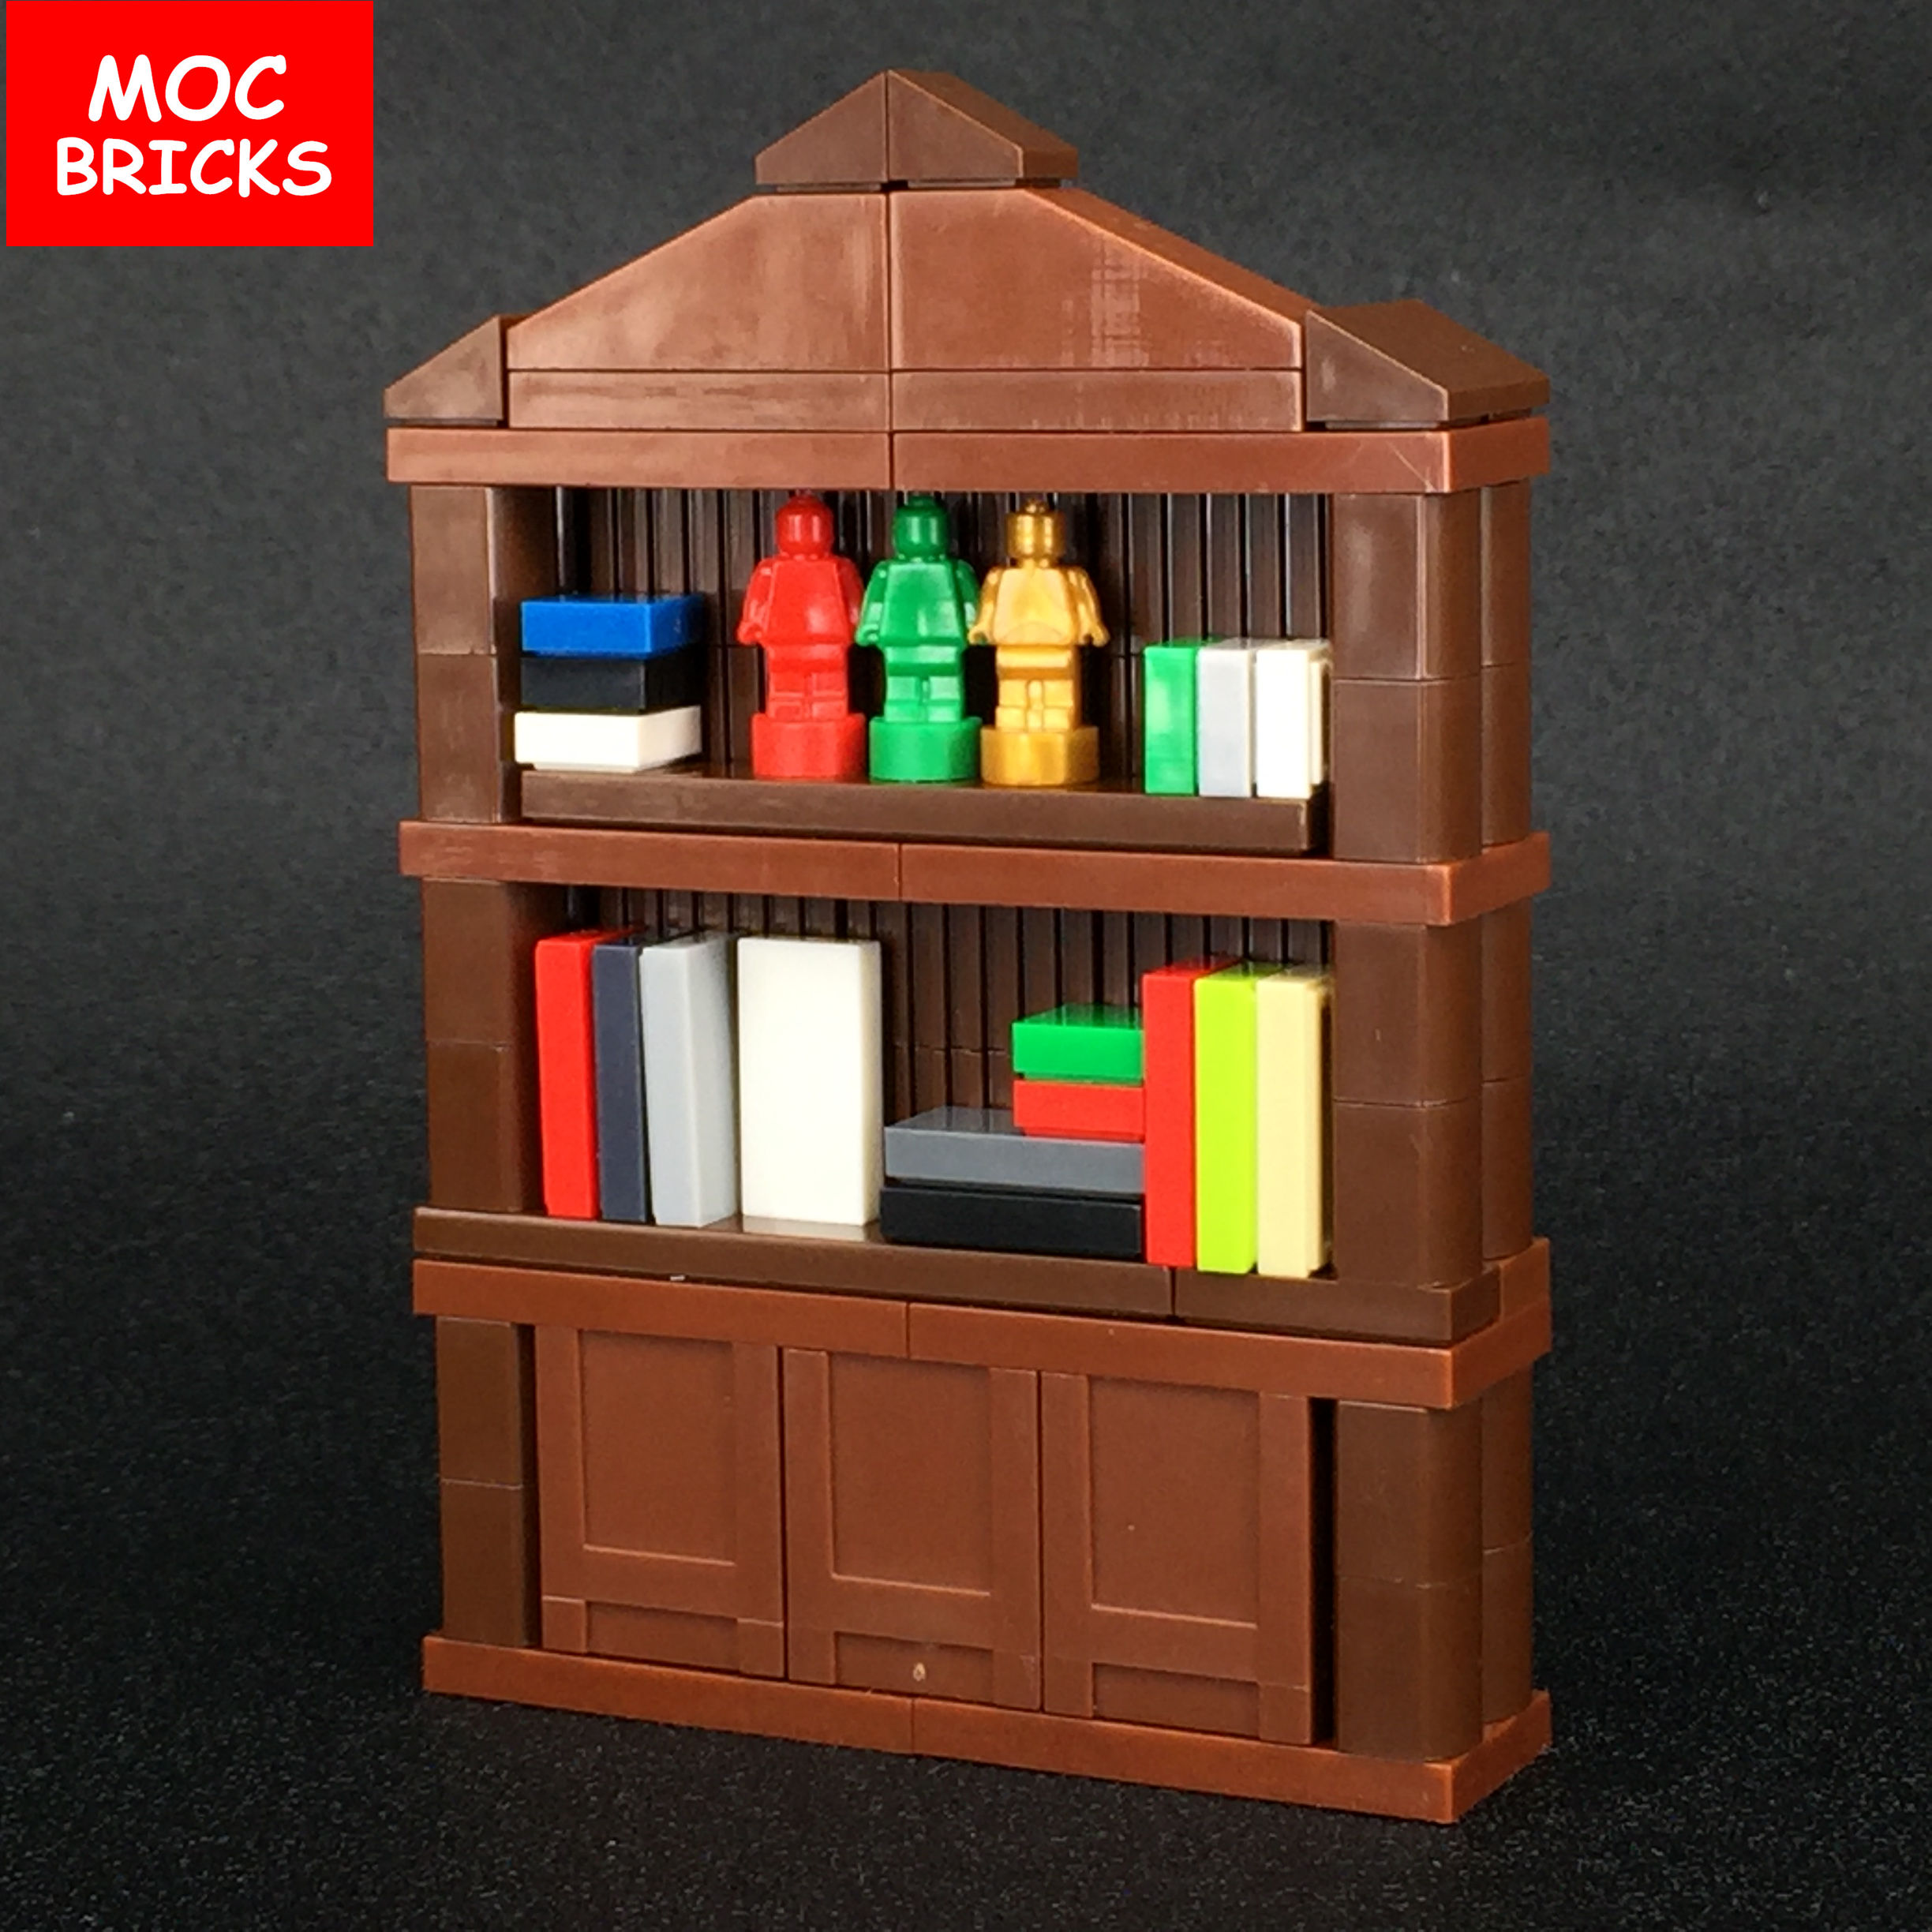 Bricks furniture Patio Set Sale Moc Bricks Diy Family Toys Furniture Bookcase Bookshelf Cabinet Educational Building Blocks Kids Gift Luxury Furniture Design Idea Set Sale Moc Bricks Diy Family Toys Furniture Bookcase Bookshelf